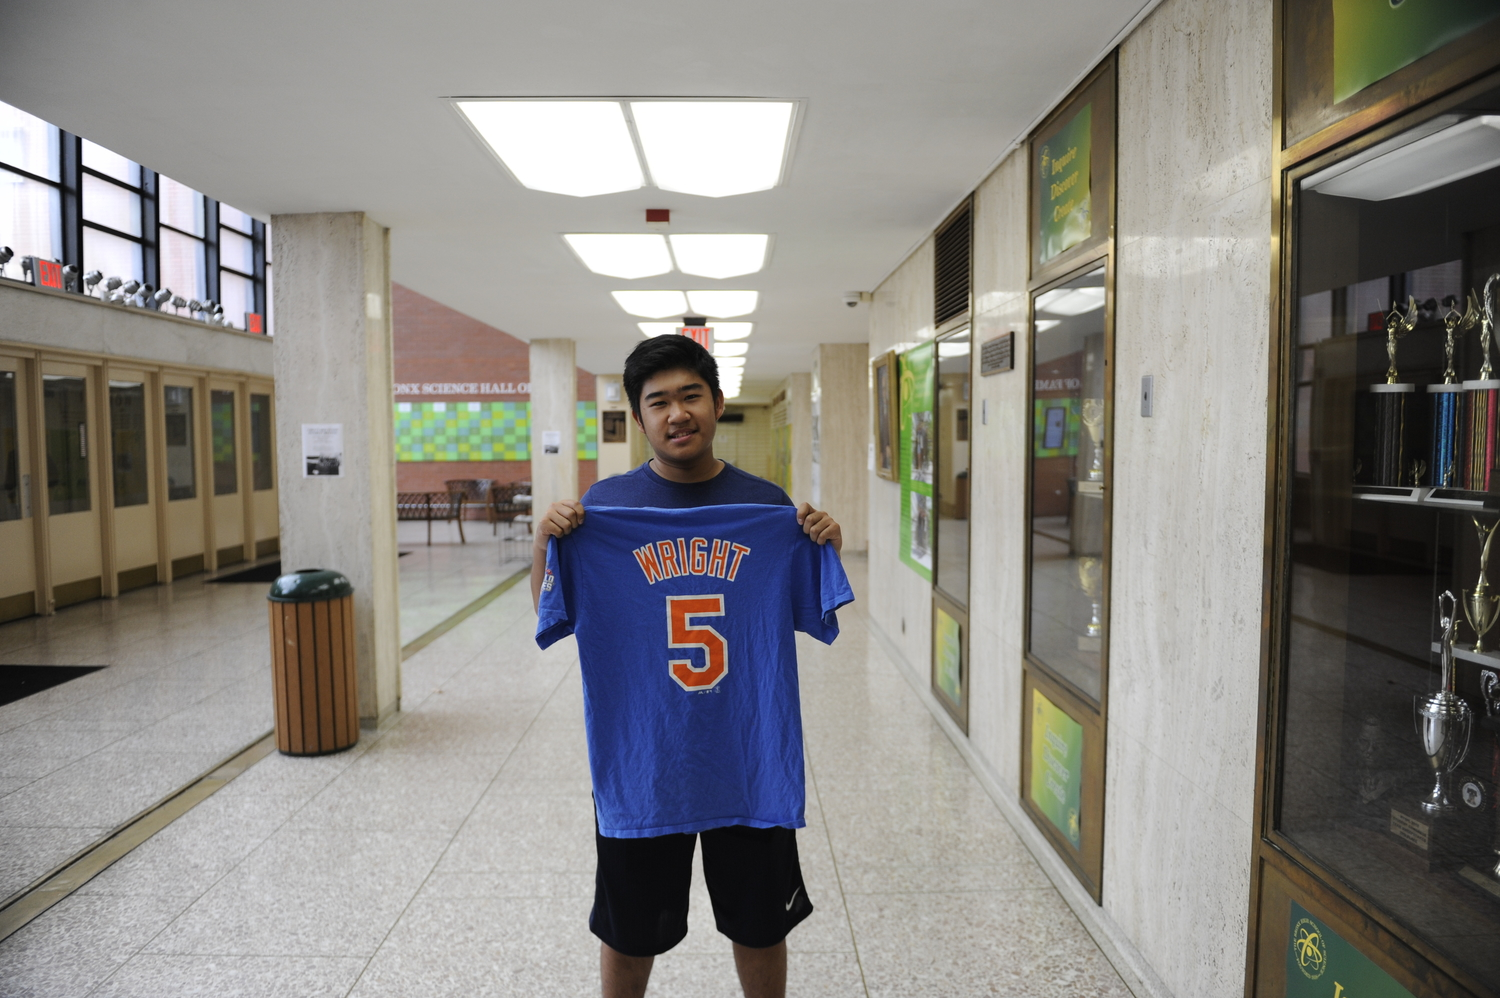 Justin Chan '19 holds up a David Wright shirt.